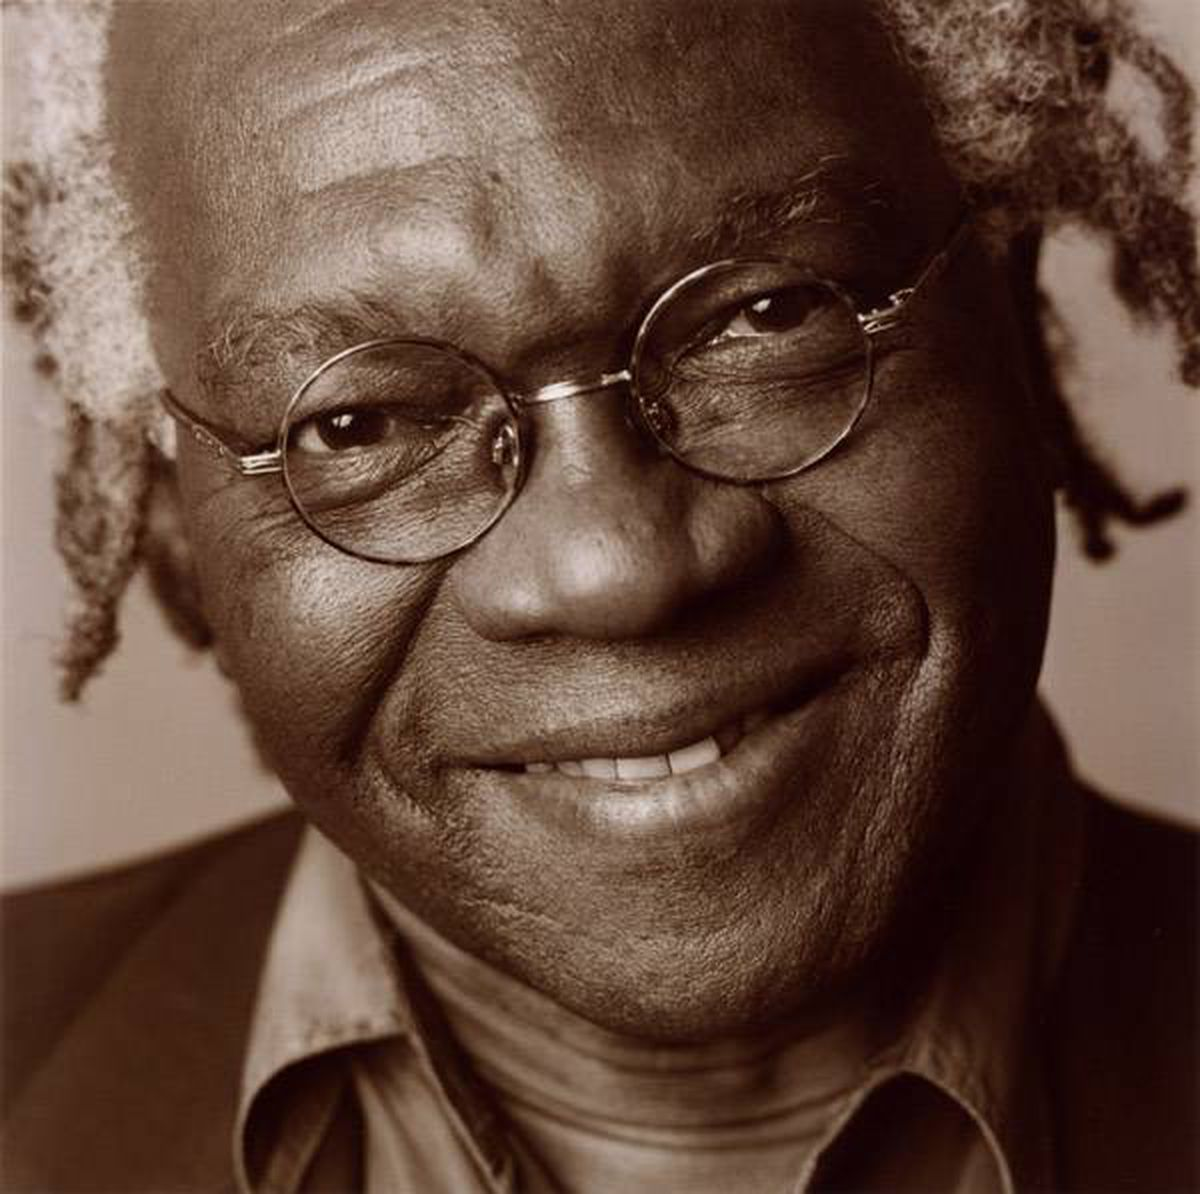 austin clarke essay Culminating with the international success of the polished hoe in 2002, austin clarke has published 11 novels, six short-story collections, four memoirs, and two non-fiction pieces.